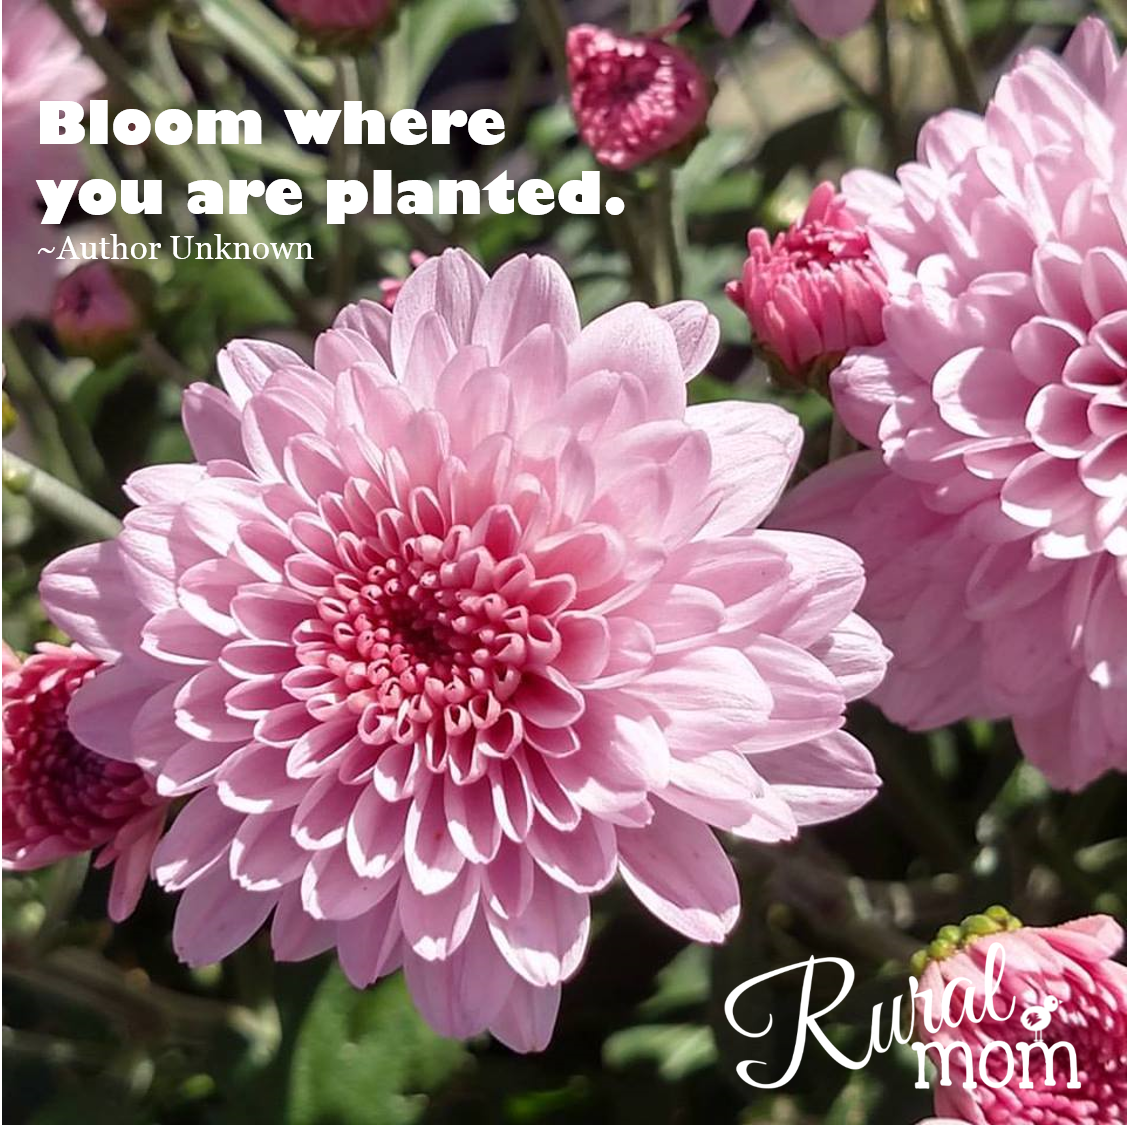 7 Gardening Quotes And Gorgeous Blooms To Inspire Your Spring